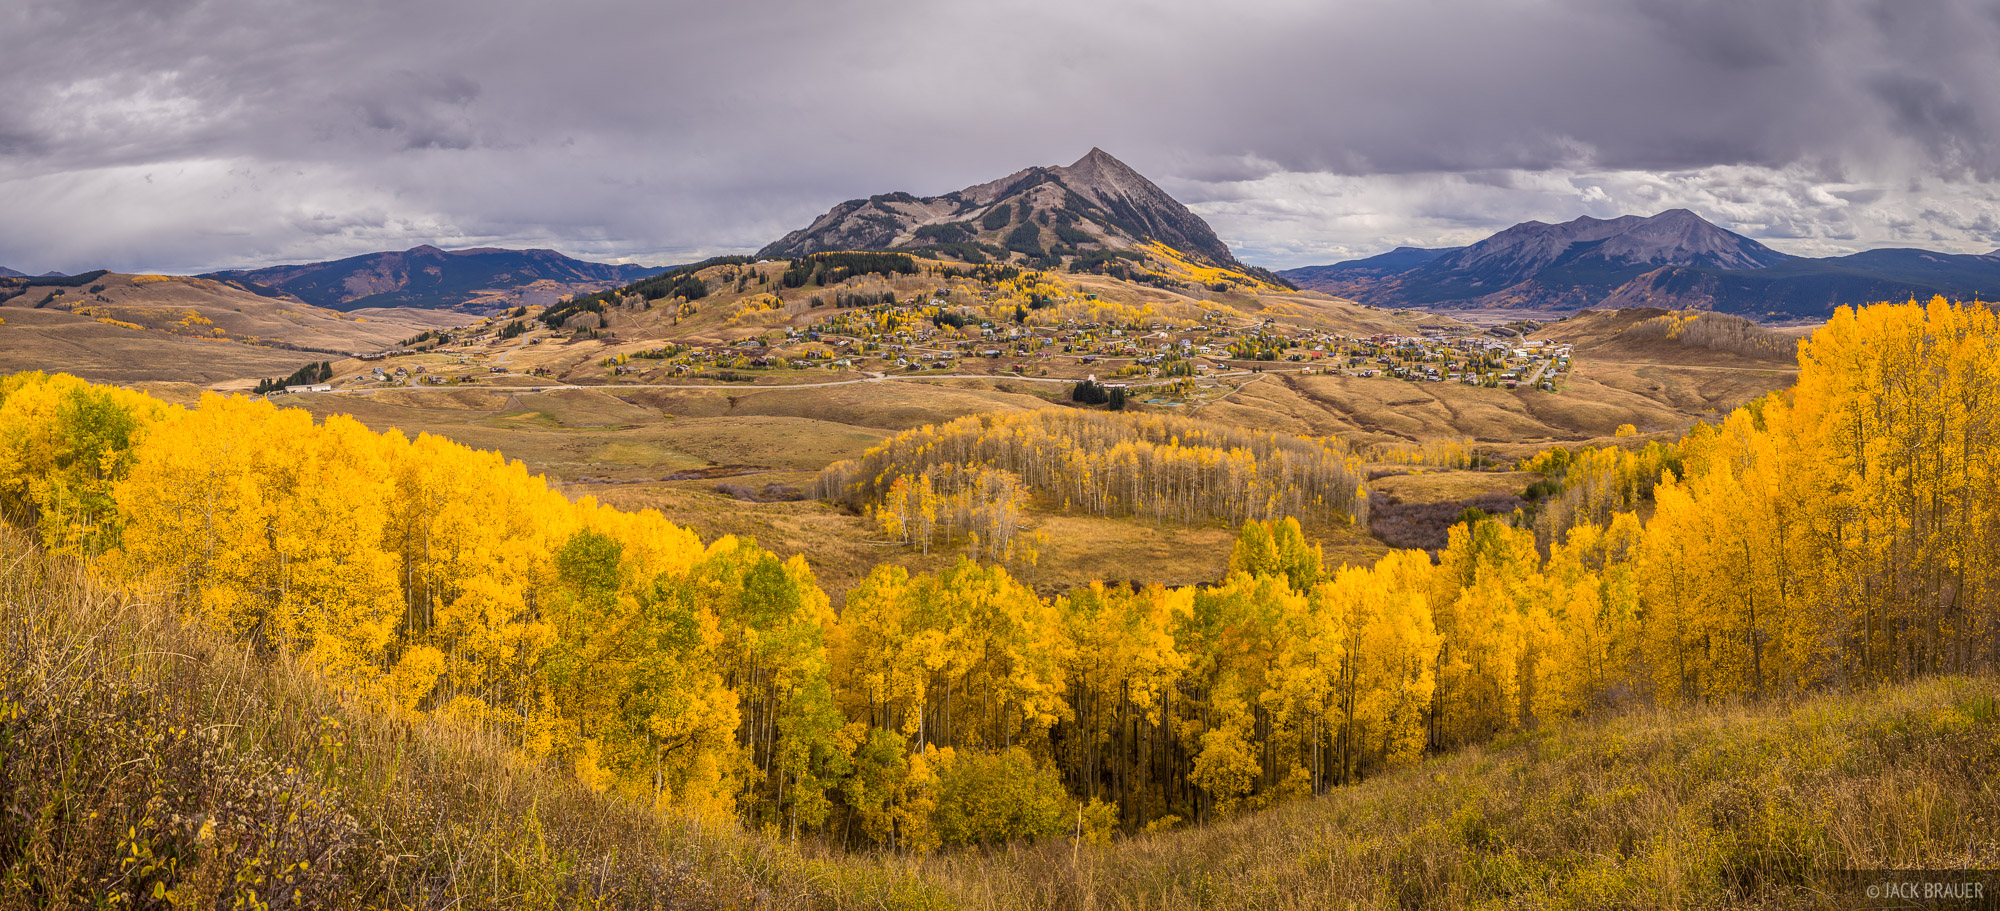 Mt. Crested Butte and golden autumn aspens on a cloudy September day.